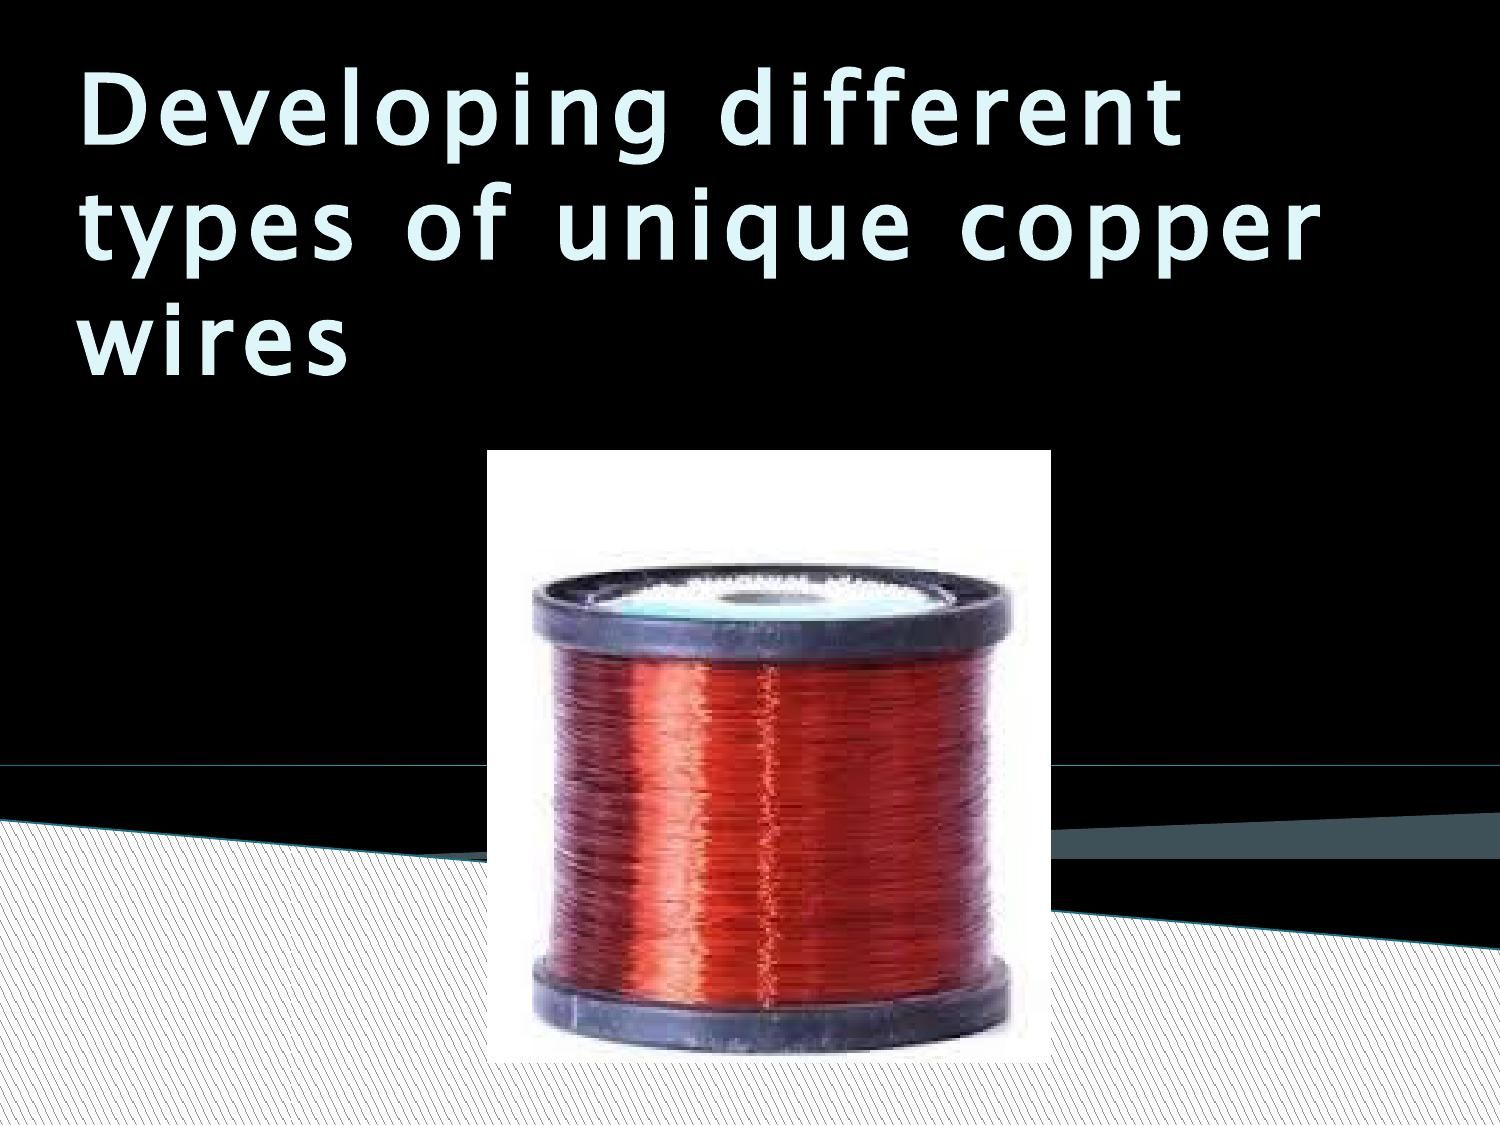 Developing different types of unique copper wires | Copper wire ...